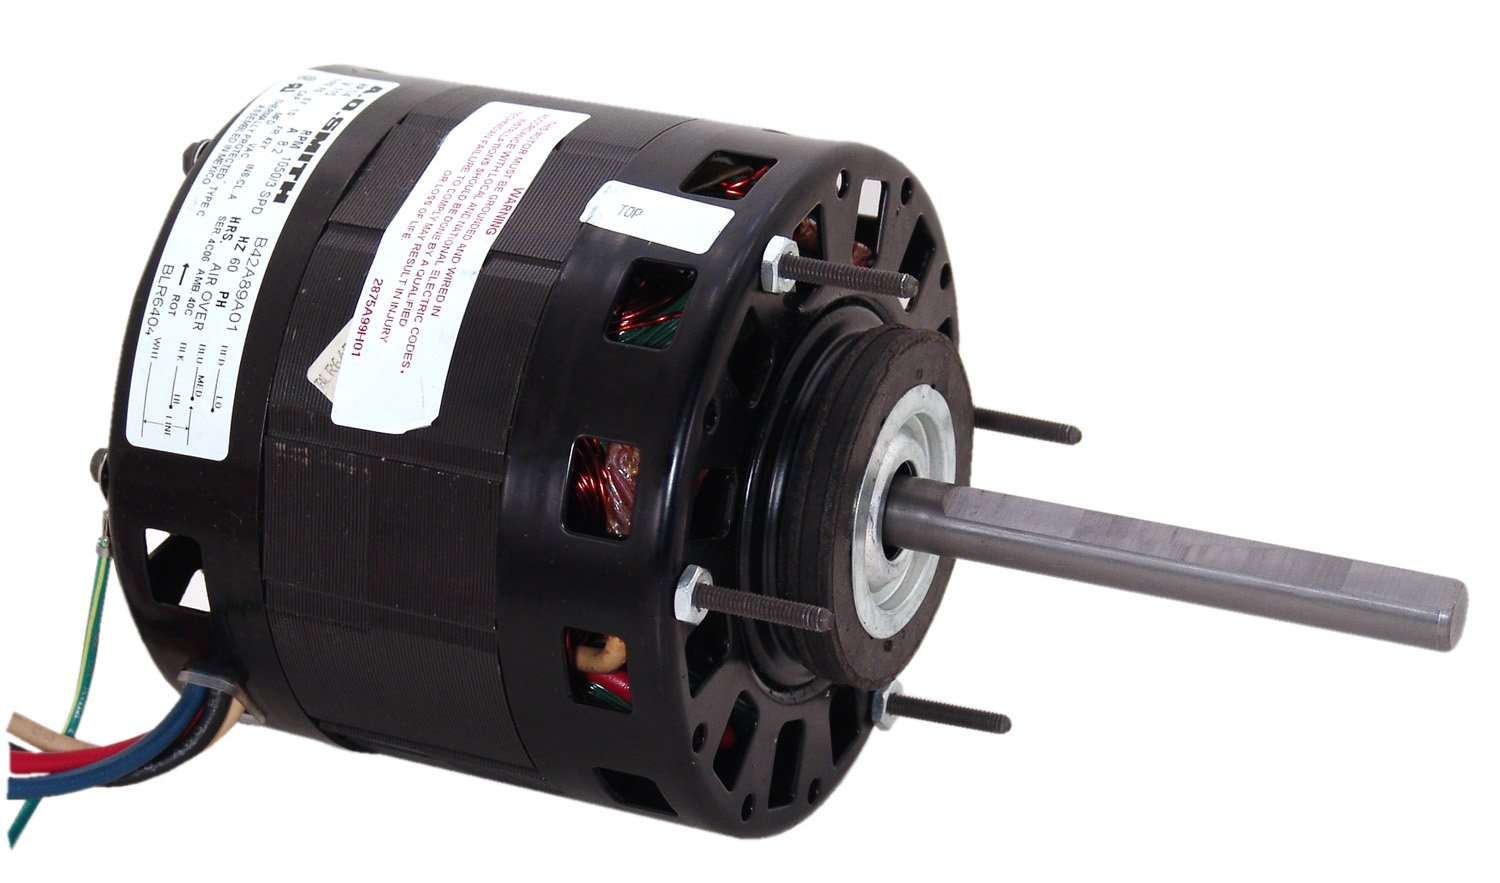 115-Volt 1050-RPM 9.4-Amp and Sleeve Bearing 1//4-HP Century BLR640S Blower Motor with 5.0-Inch Frame Diameter